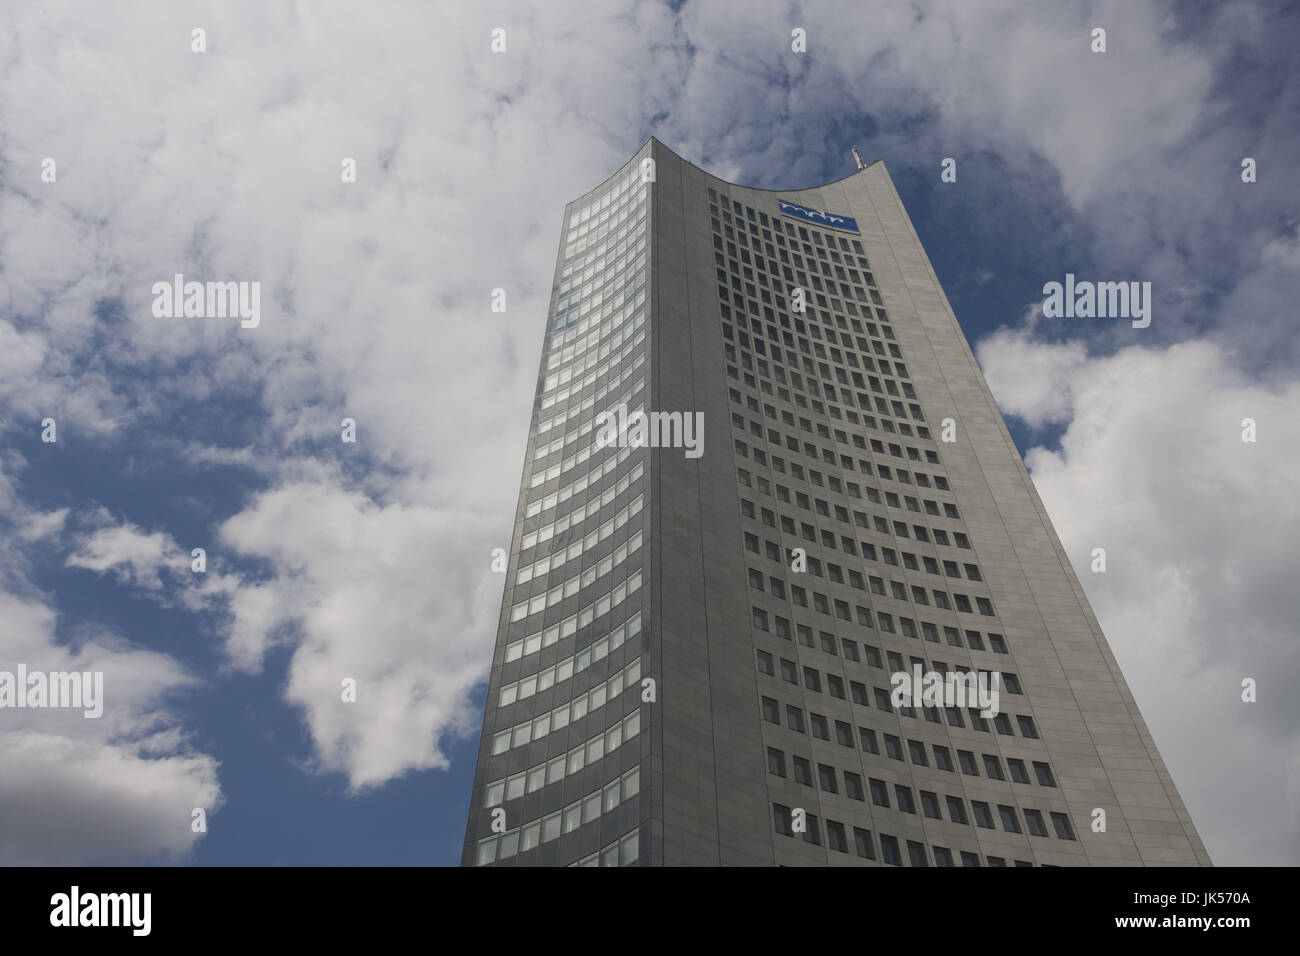 Germany, Sachsen, Leipzig, MDR Hochhaus tower, - Stock Image